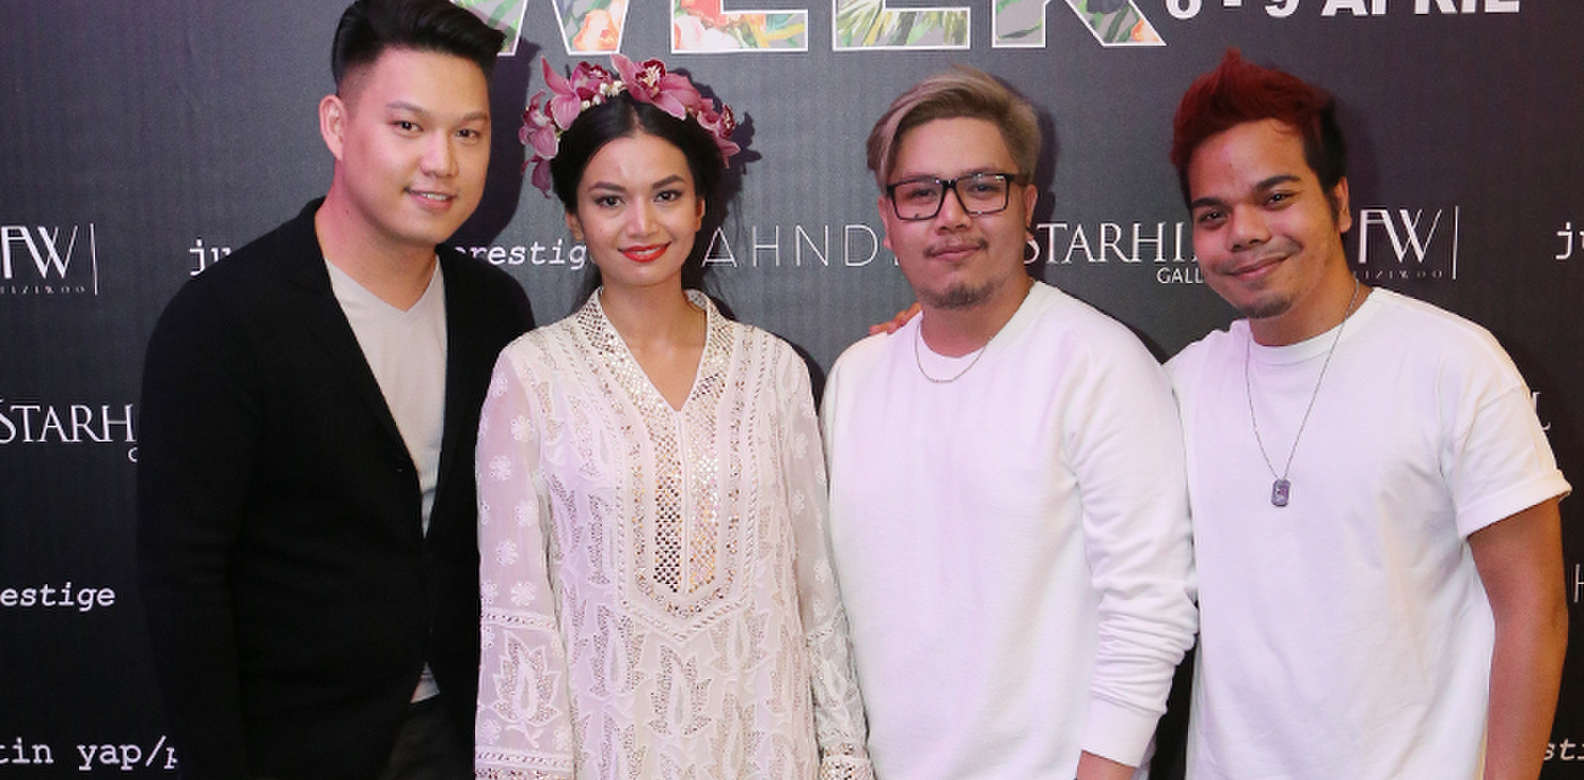 A Look At The Local Designers Who Shone Starhill Gallery Fashion Baju Overall Mqueen Week 2016